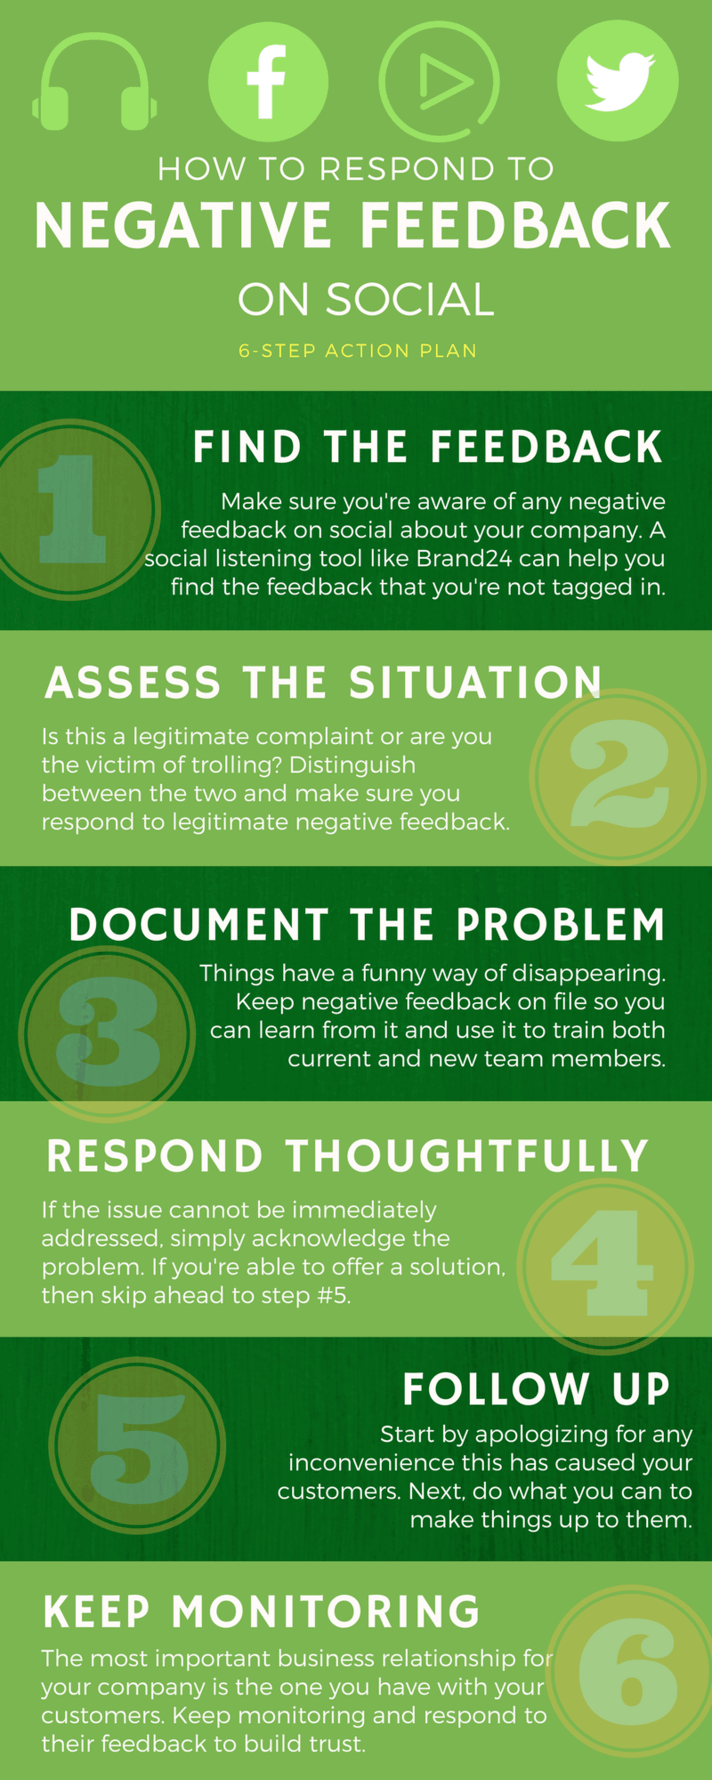 how to respond to negative feedback on social